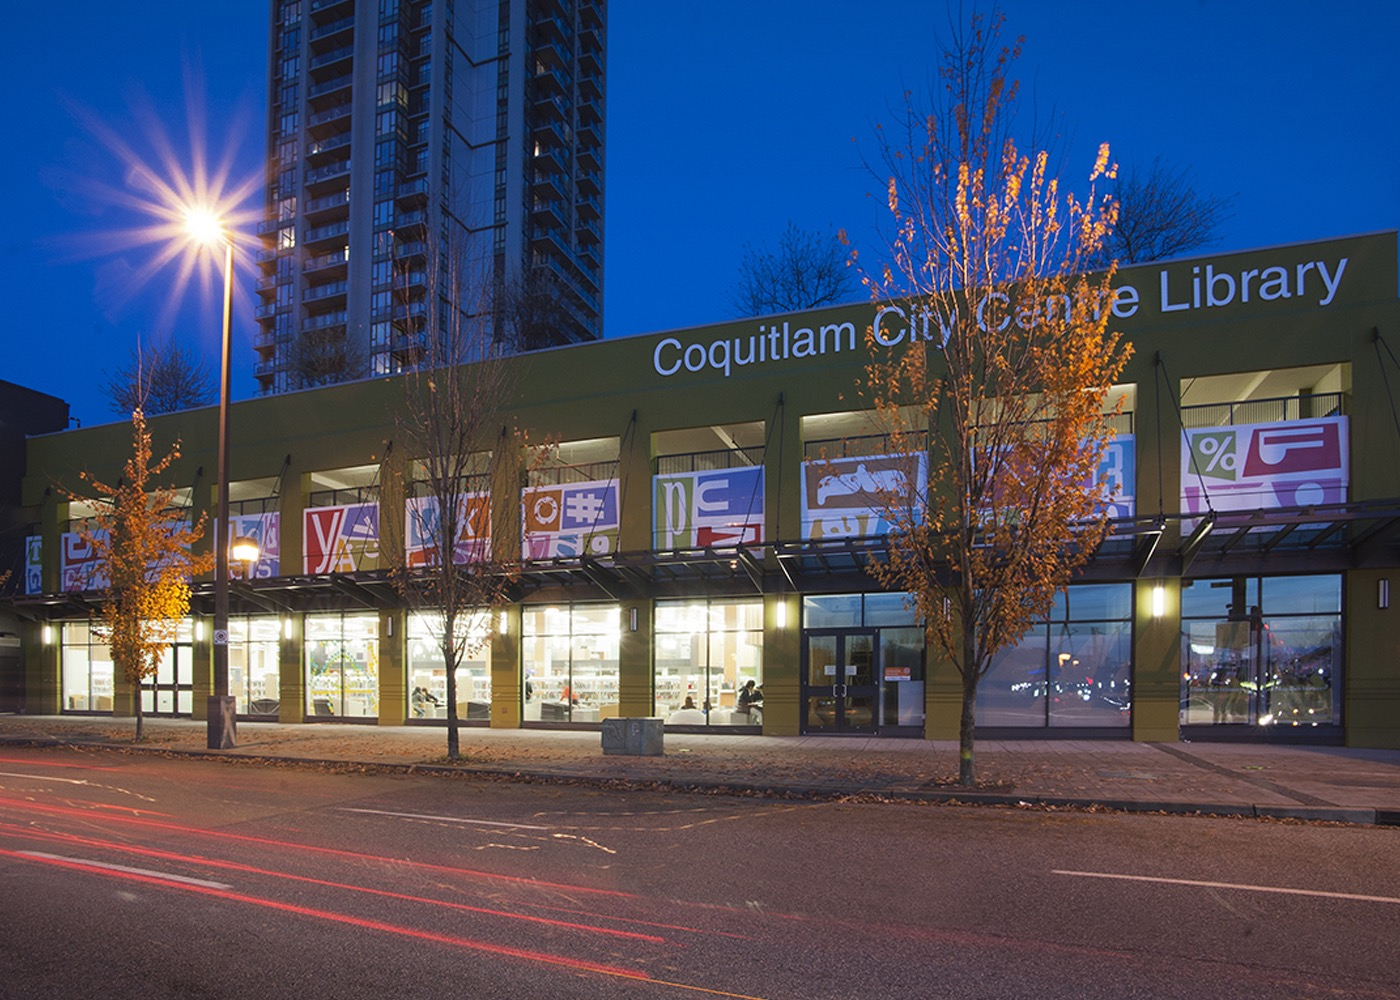 Coquitlam City Centre Library